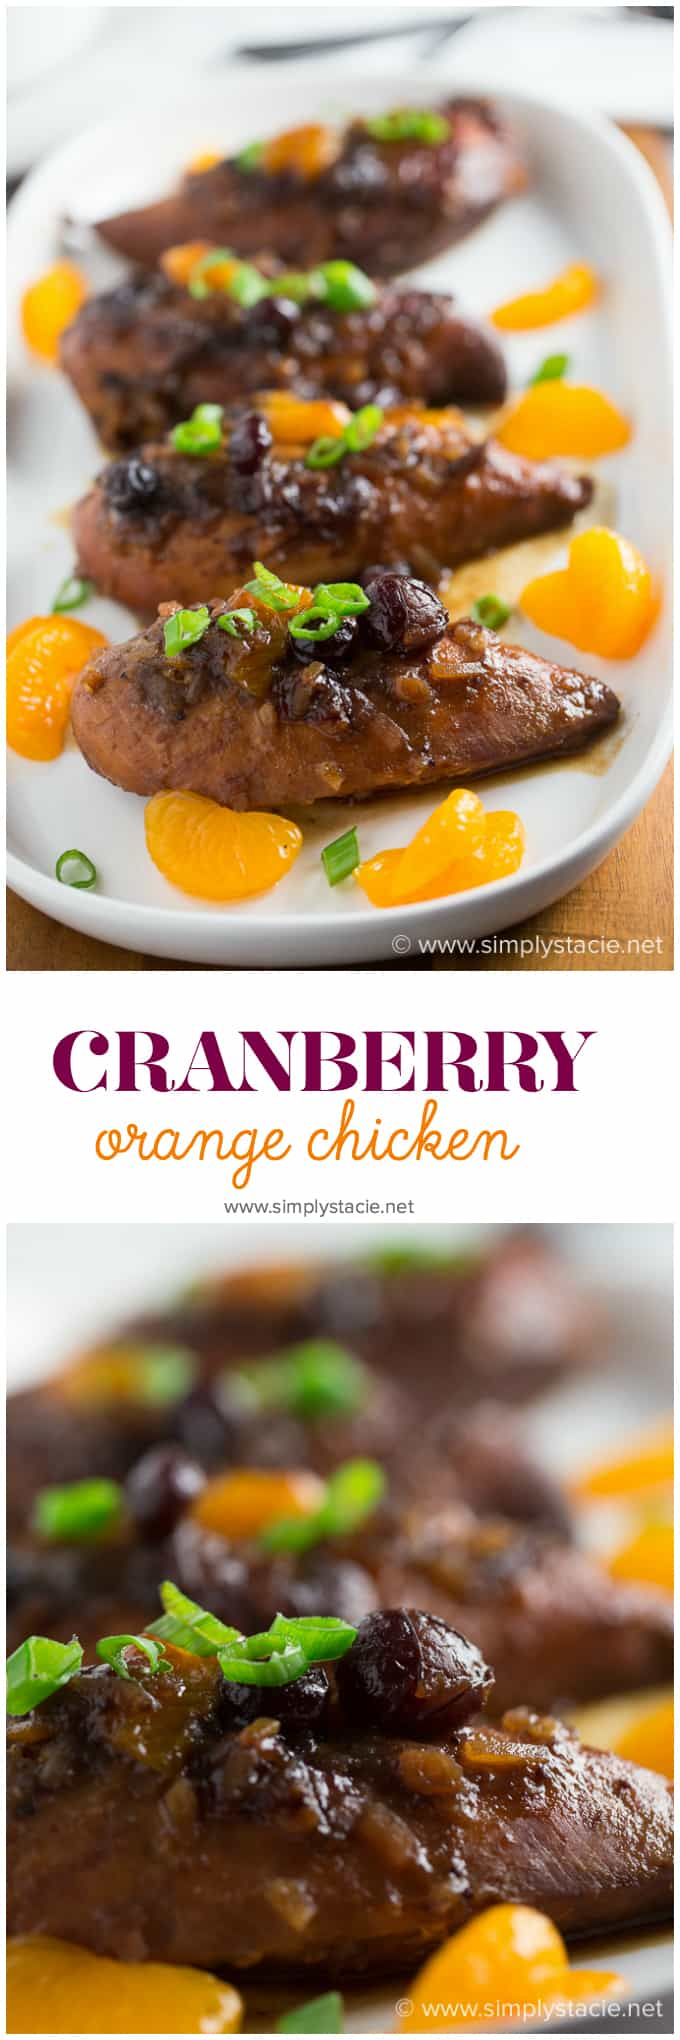 Slow Cooker Cranberry Orange Chicken - Add a tangy twist to your orange chicken! This Crockpot chicken recipe is perfect for the holiday season with cranberry sauce, ginger, and balsamic vinegar in this Asian-inspired main dish.